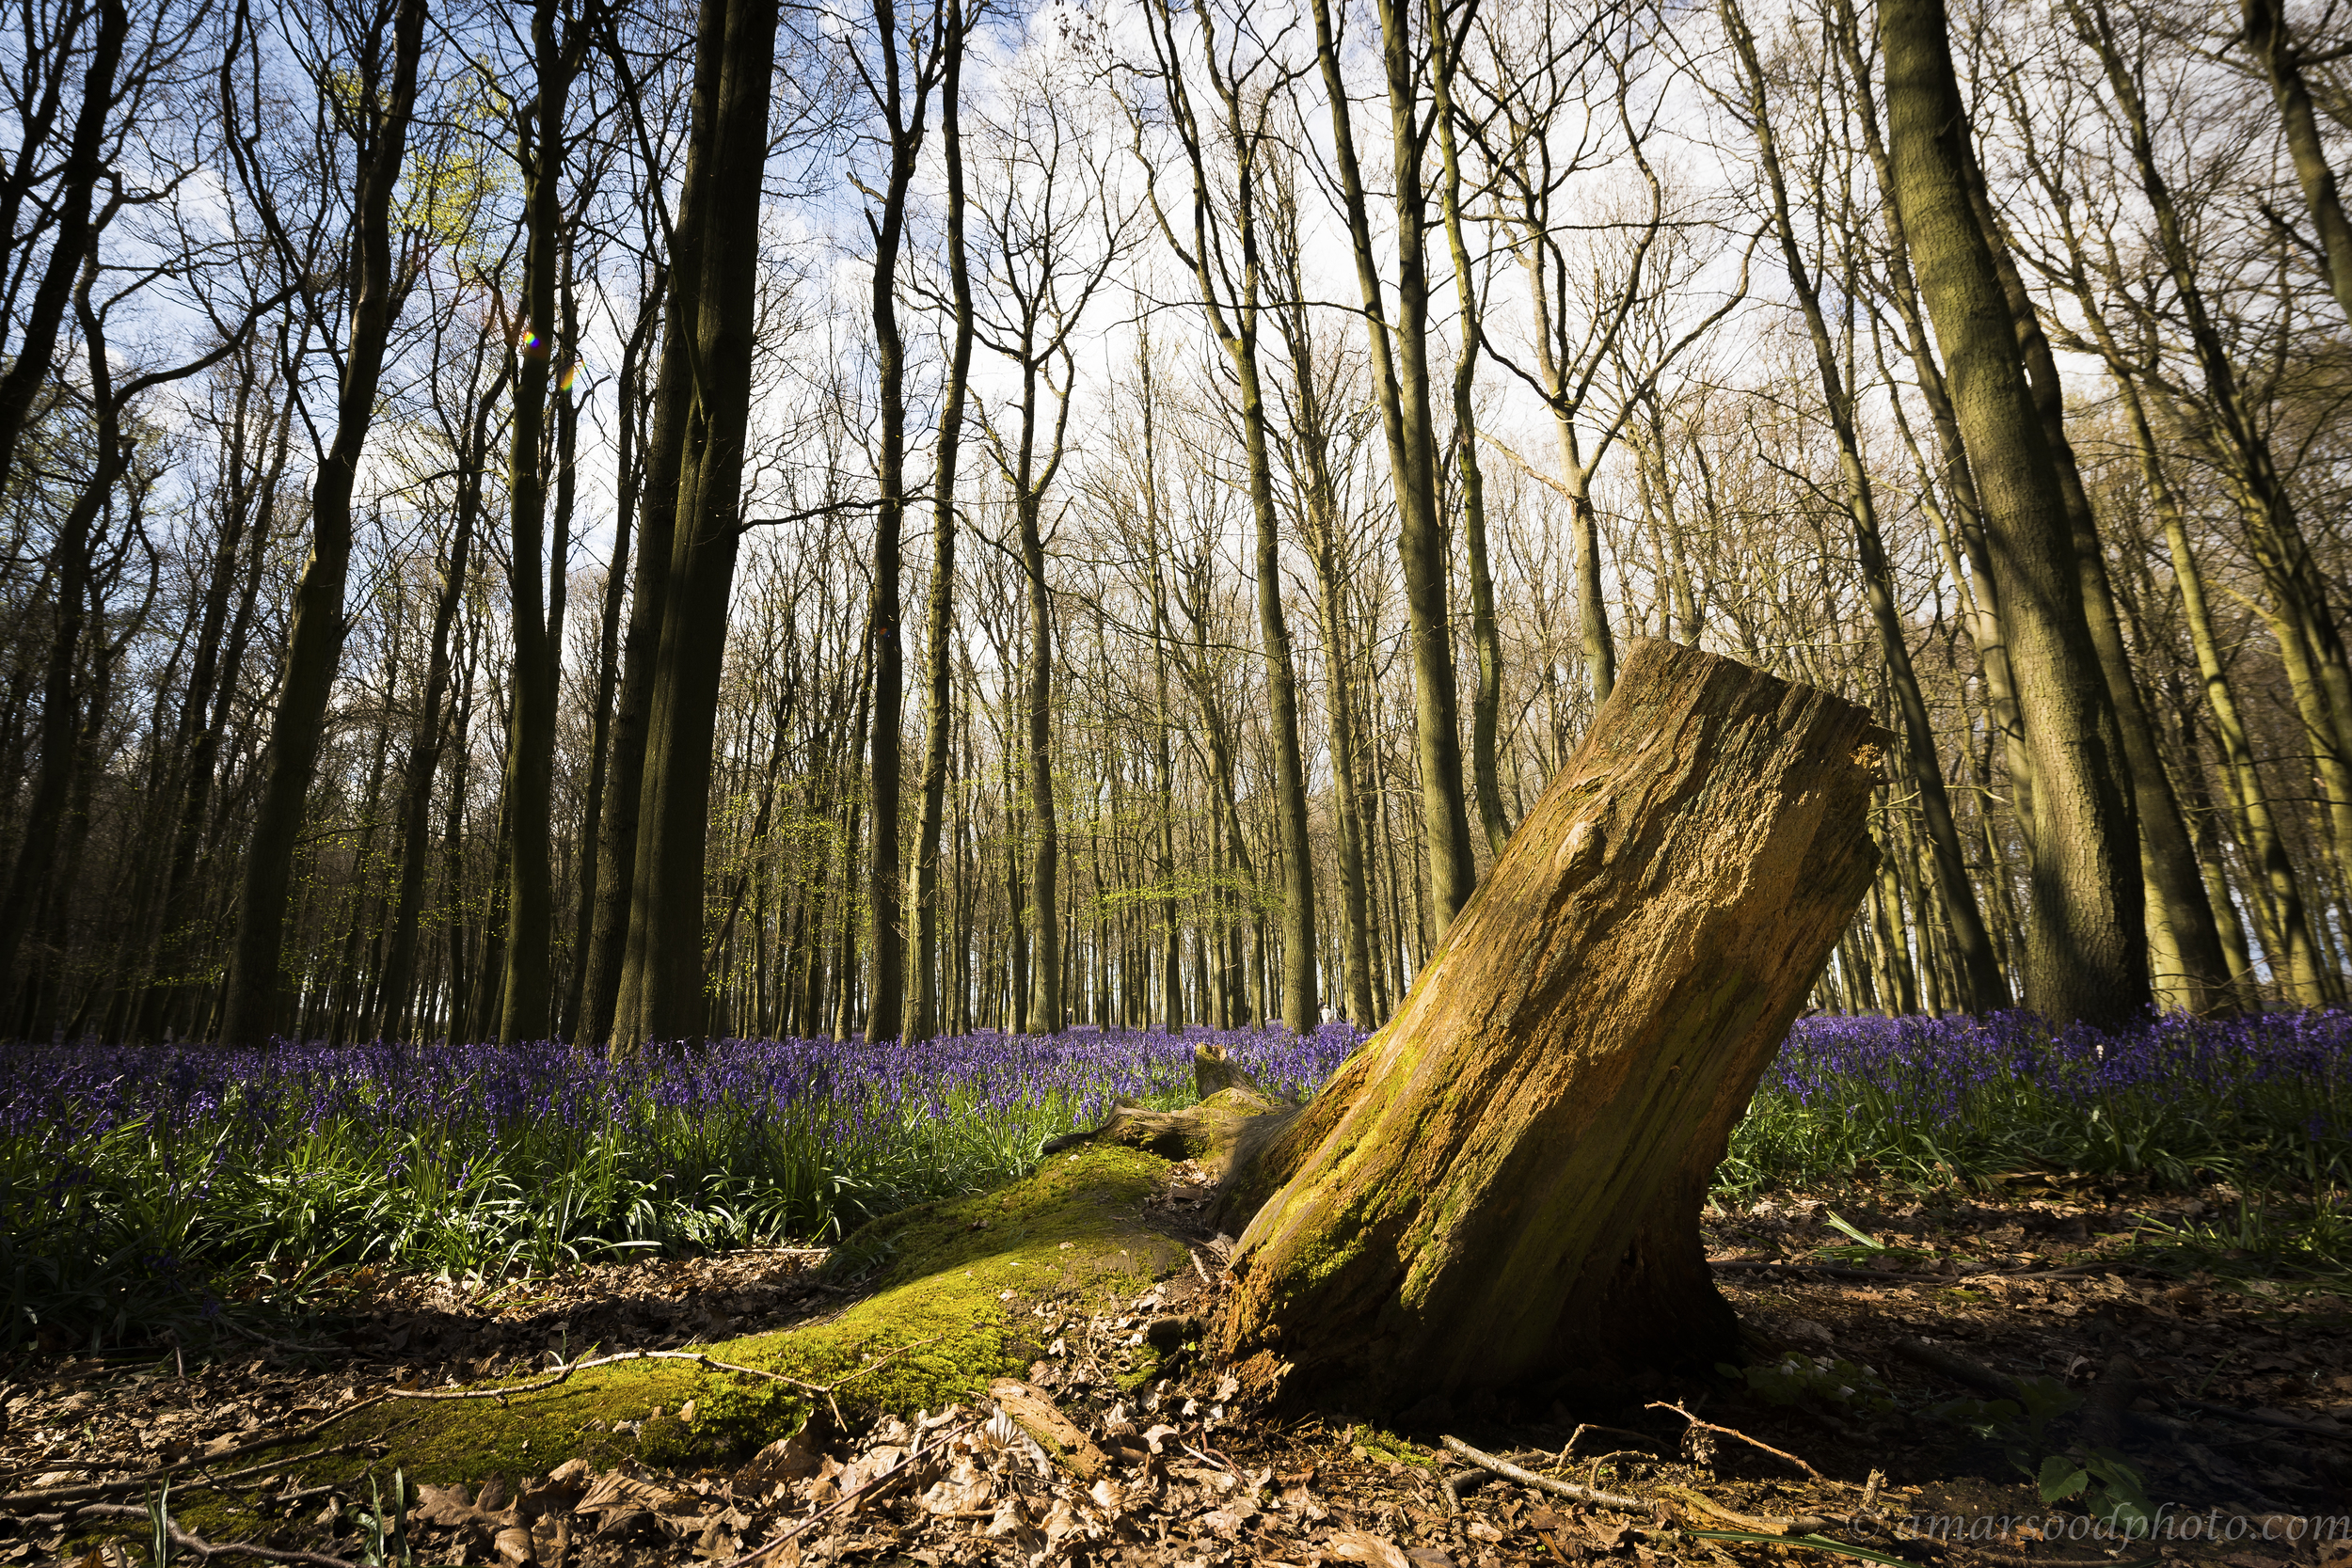 Ashridge Bluebells Tree Stump.jpg